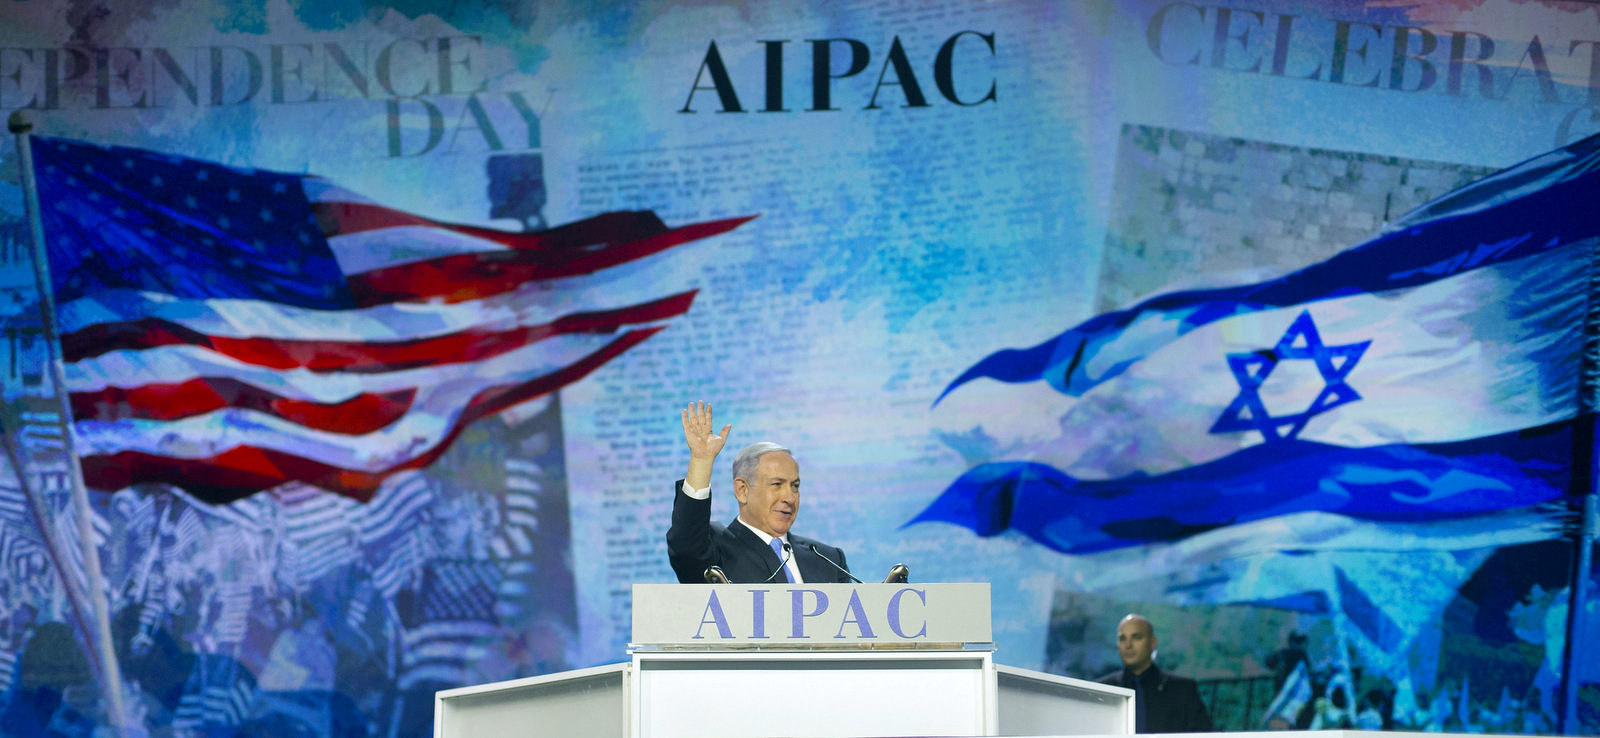 Israeli Prime Minister Benjamin Netanyahu waves to members of the audience before speaking at the American Israel Public Affairs Committee (AIPAC) Policy Conference in Washington, Monday, March 2, 2015. (AP Photo/Pablo Martinez Monsivais)